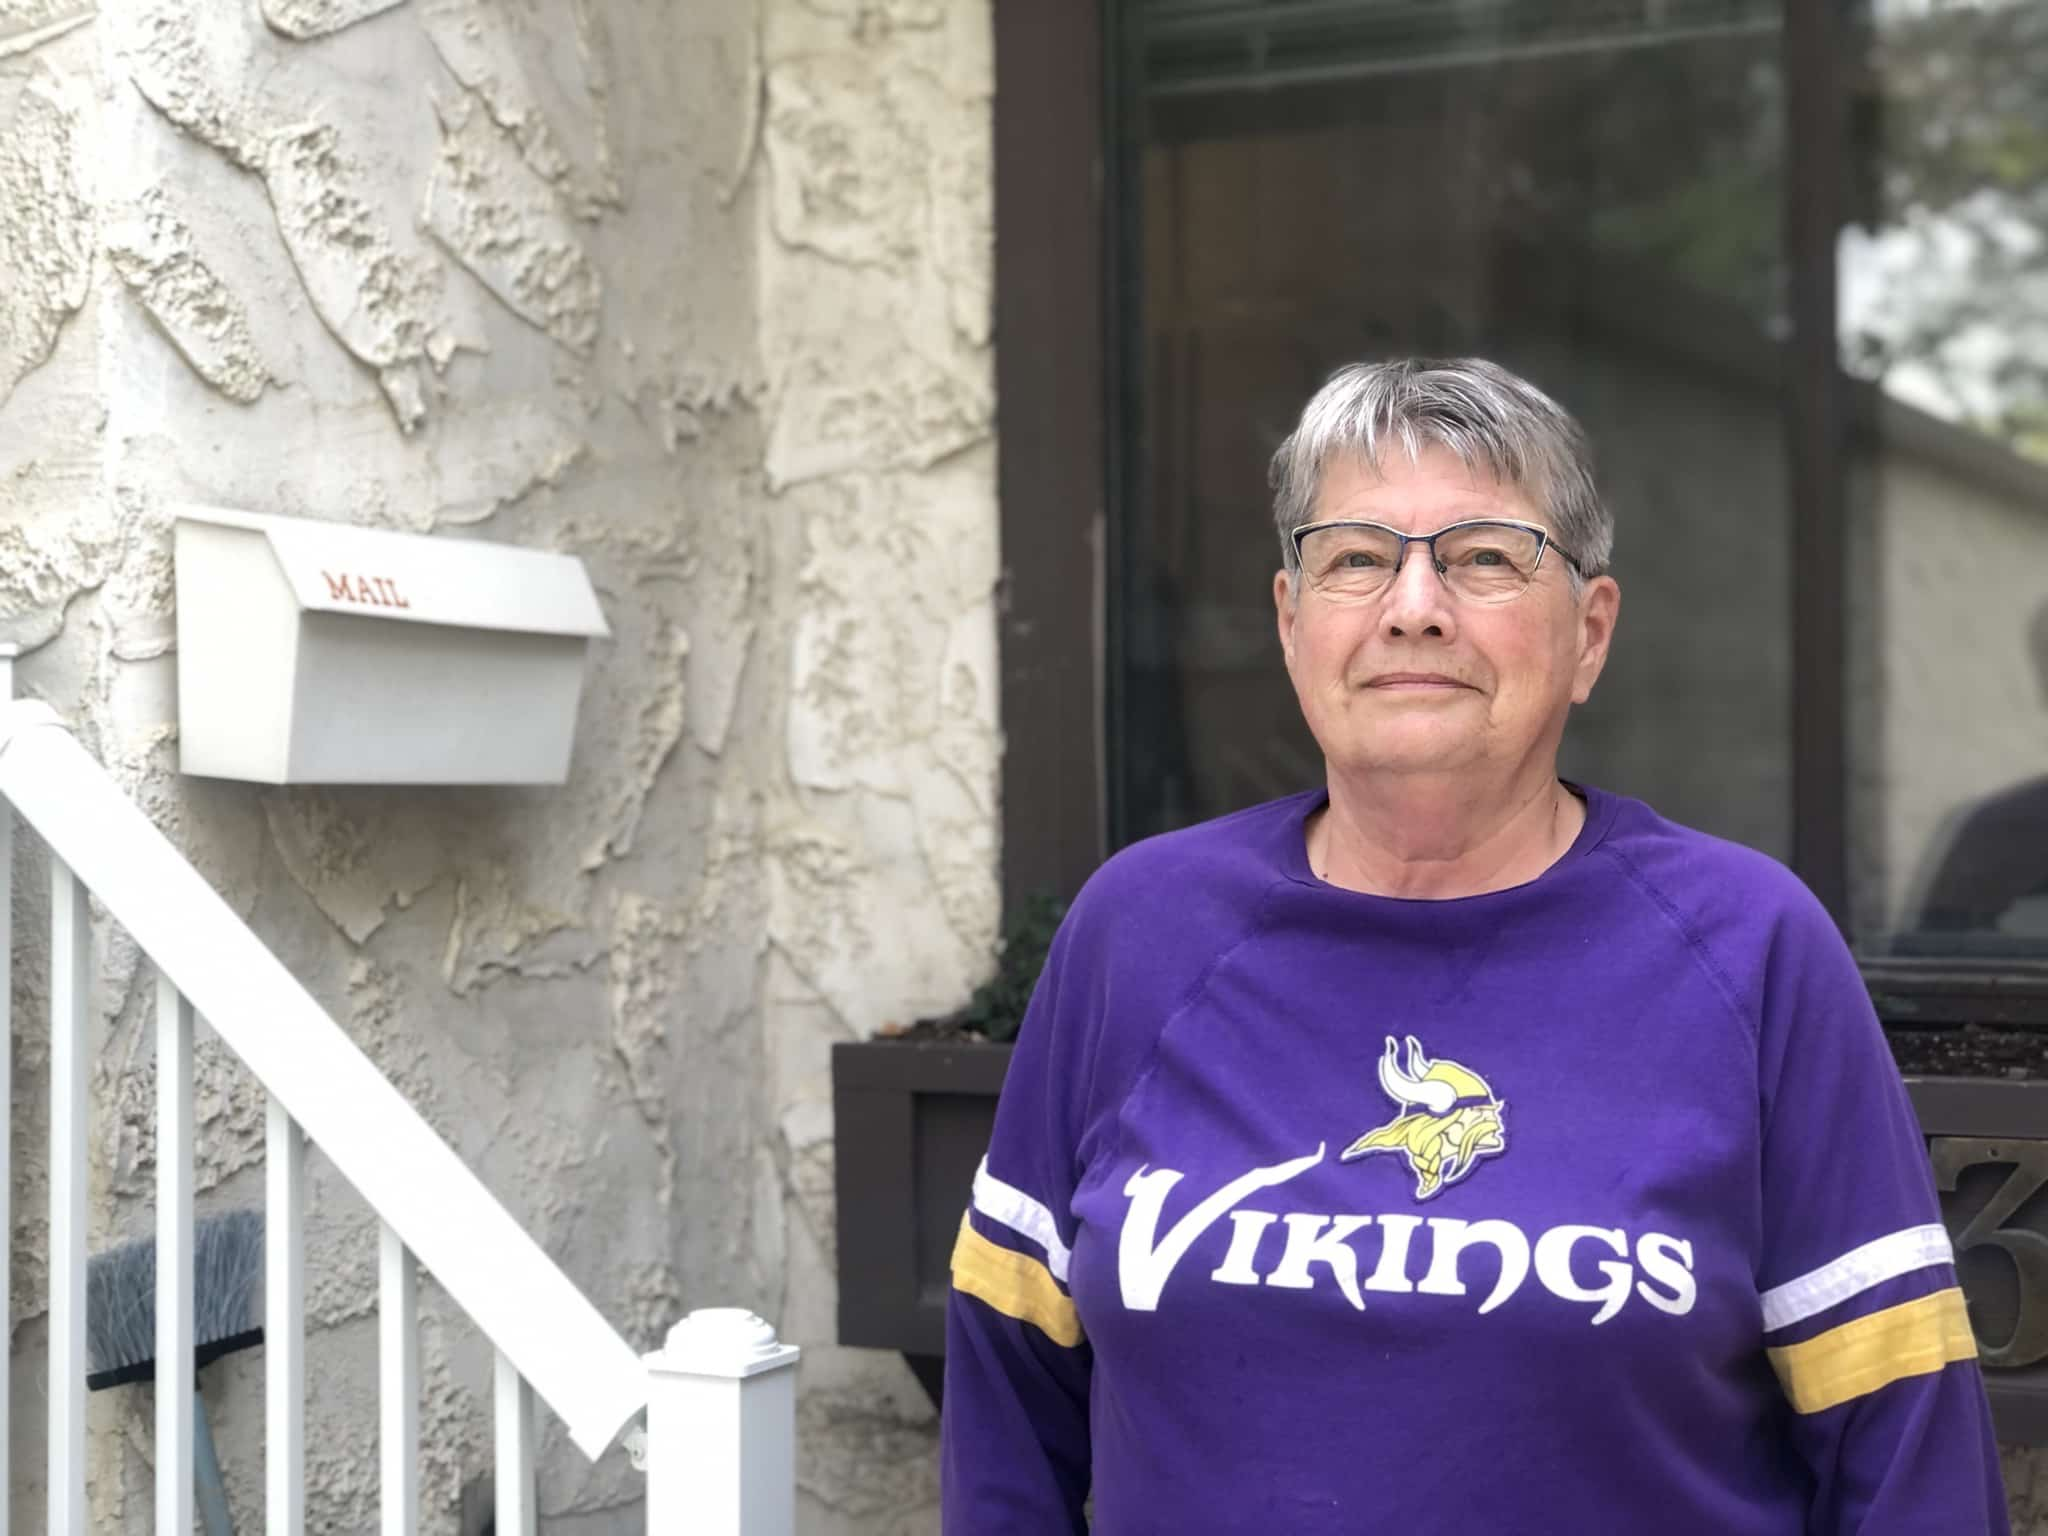 Regina-Wascana resident Linda Anderson laments a third-party funded effort that helped end Ralph Goodale's 26 years as Liberal MP for the riding. (Dylan Robertson / Winnipeg Free Press)